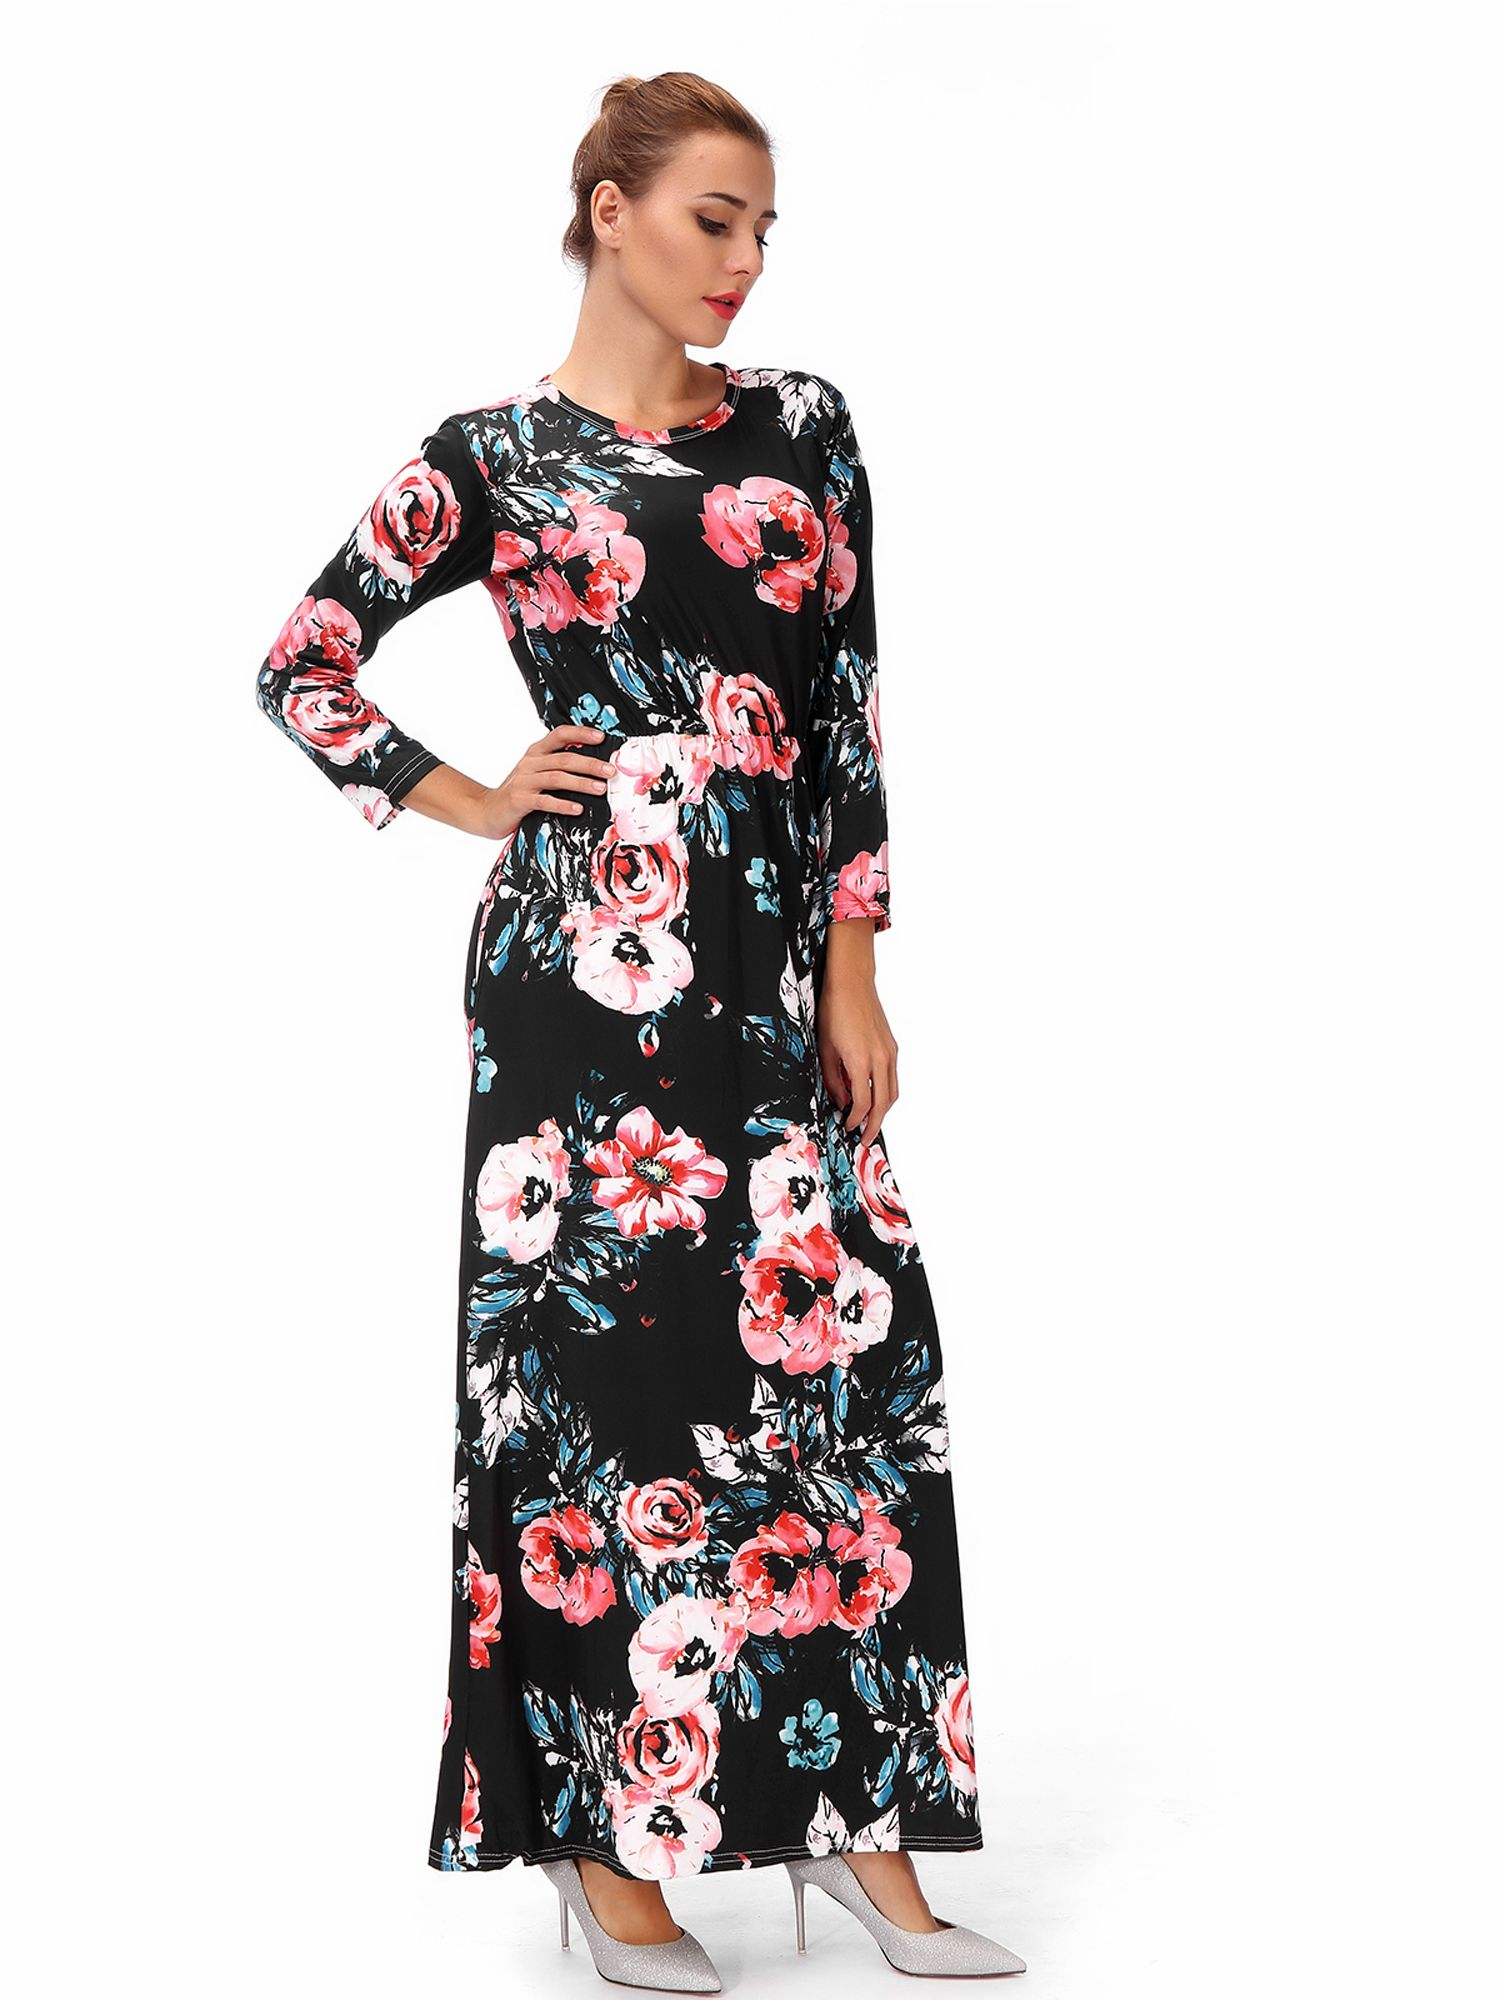 Women S Maternity Hight Waistline Long Sleeve Maxi Dress Ink Painting Floral With Pocket Ad Waistline Aff Maxi Dress Long Sleeve Maxi Dress Warm Dresses [ 2000 x 1500 Pixel ]